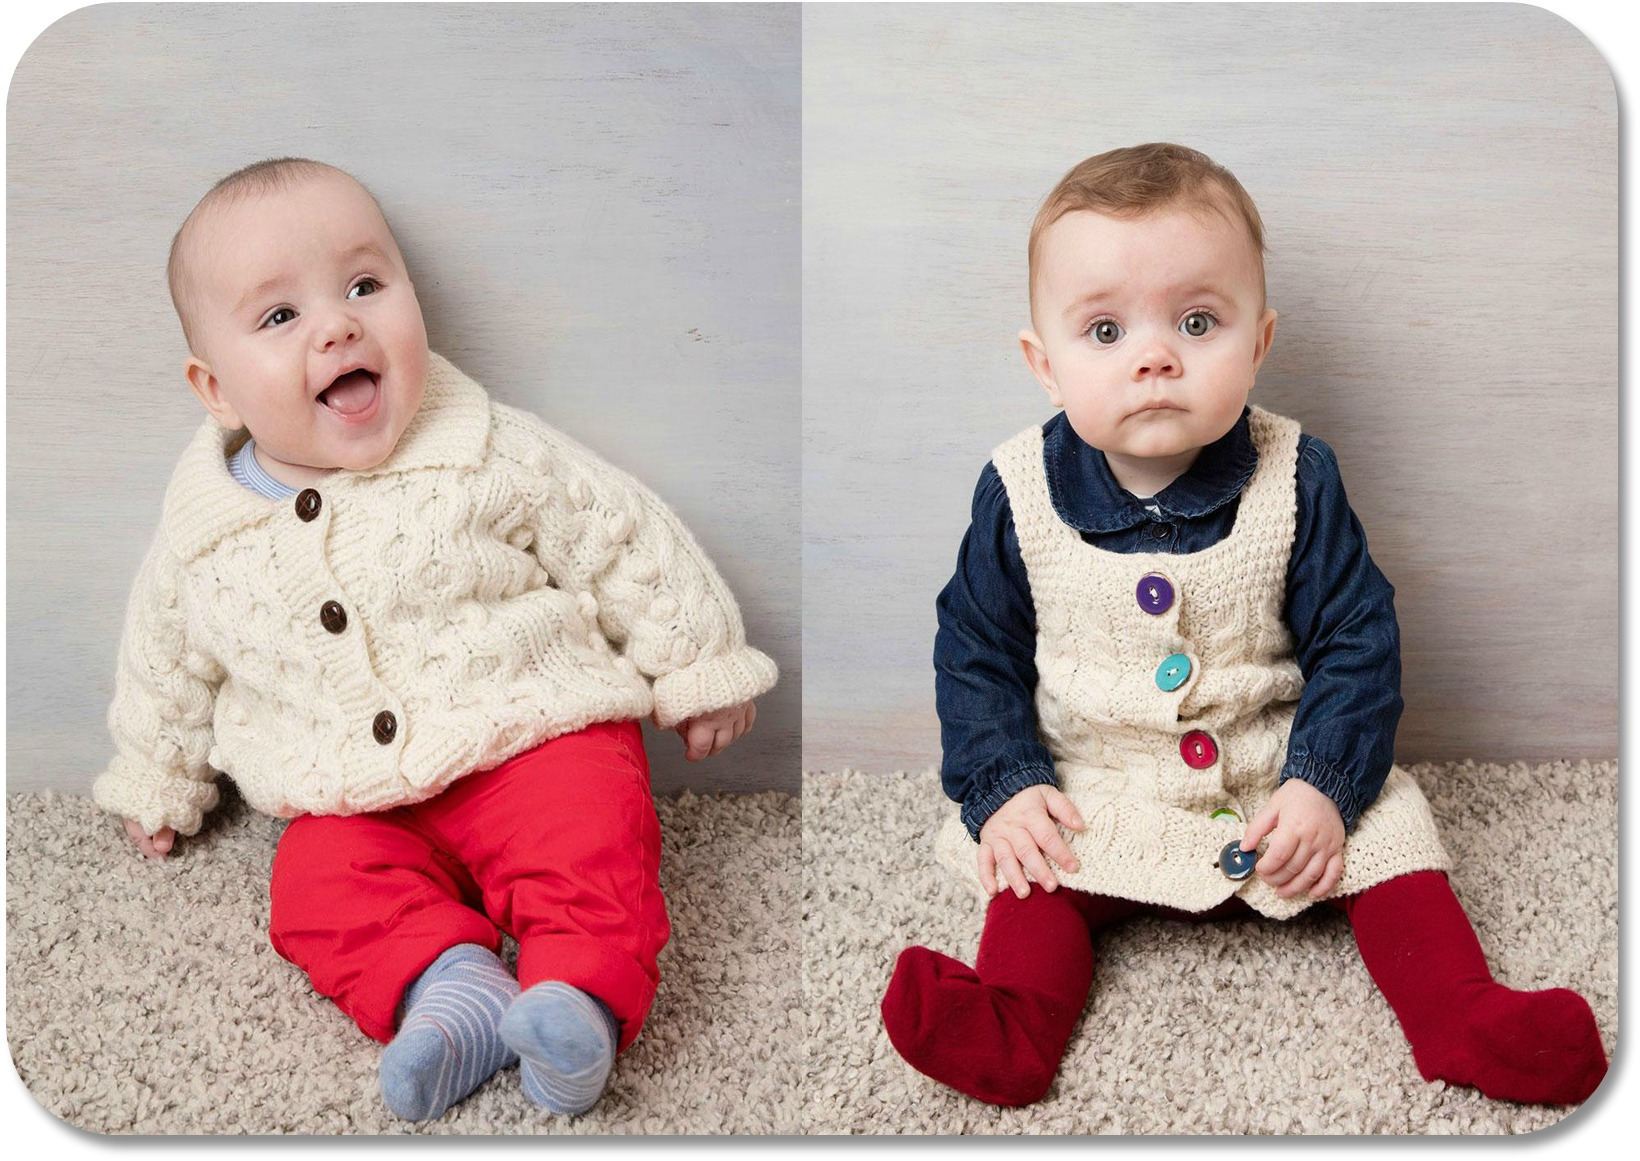 Traditional Irish Clothing - kids clothes from Blarney Woollen Mills.